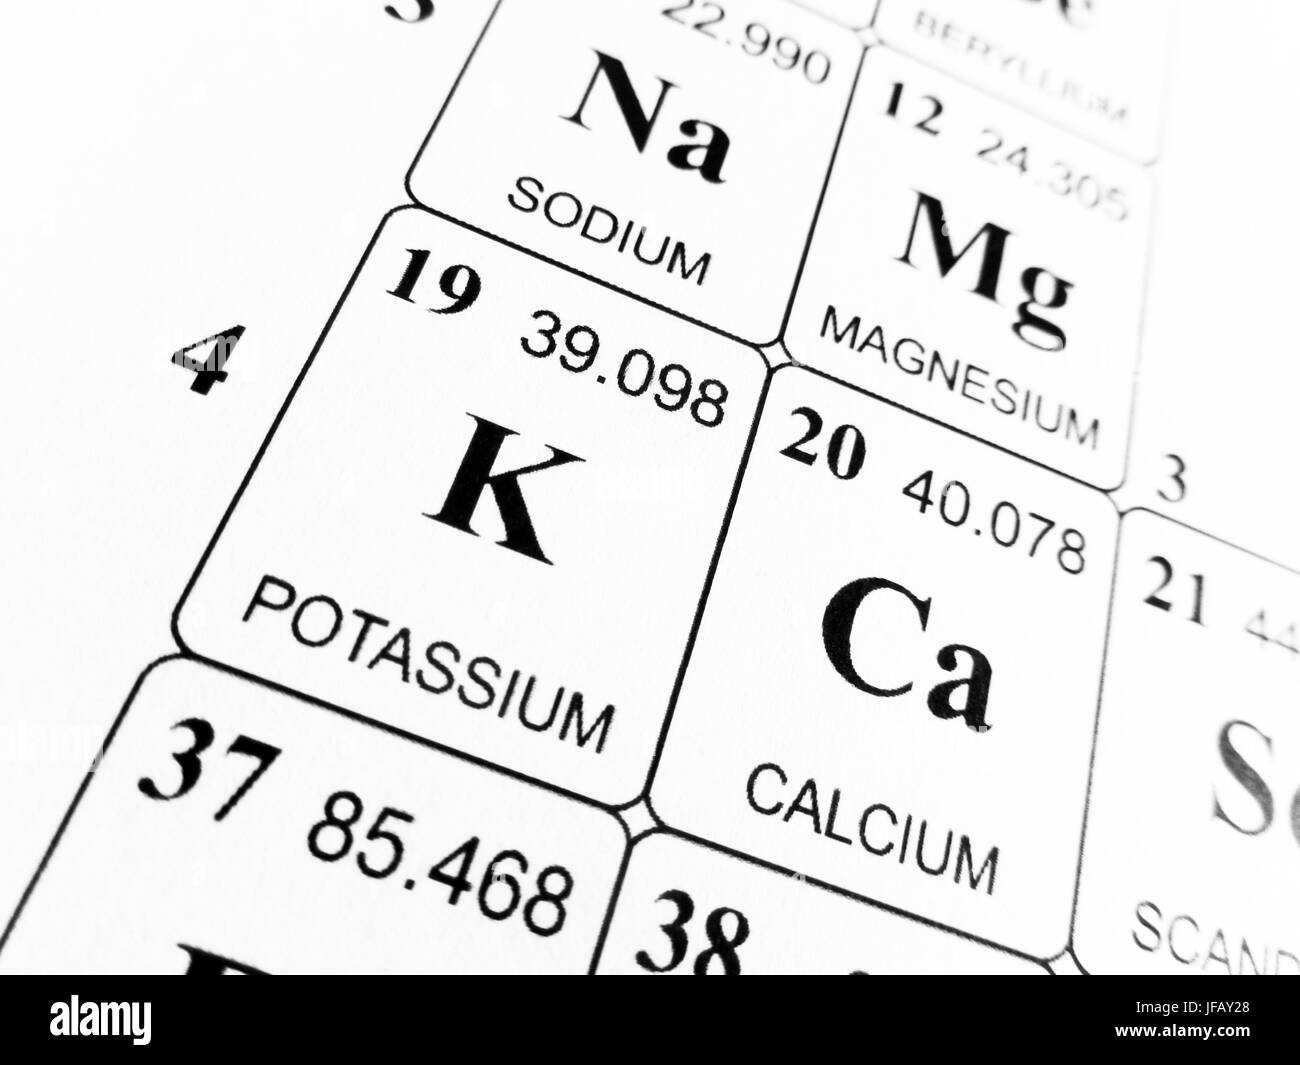 Potassium on the periodic table of the elements stock photo potassium on the periodic table of the elements gamestrikefo Choice Image